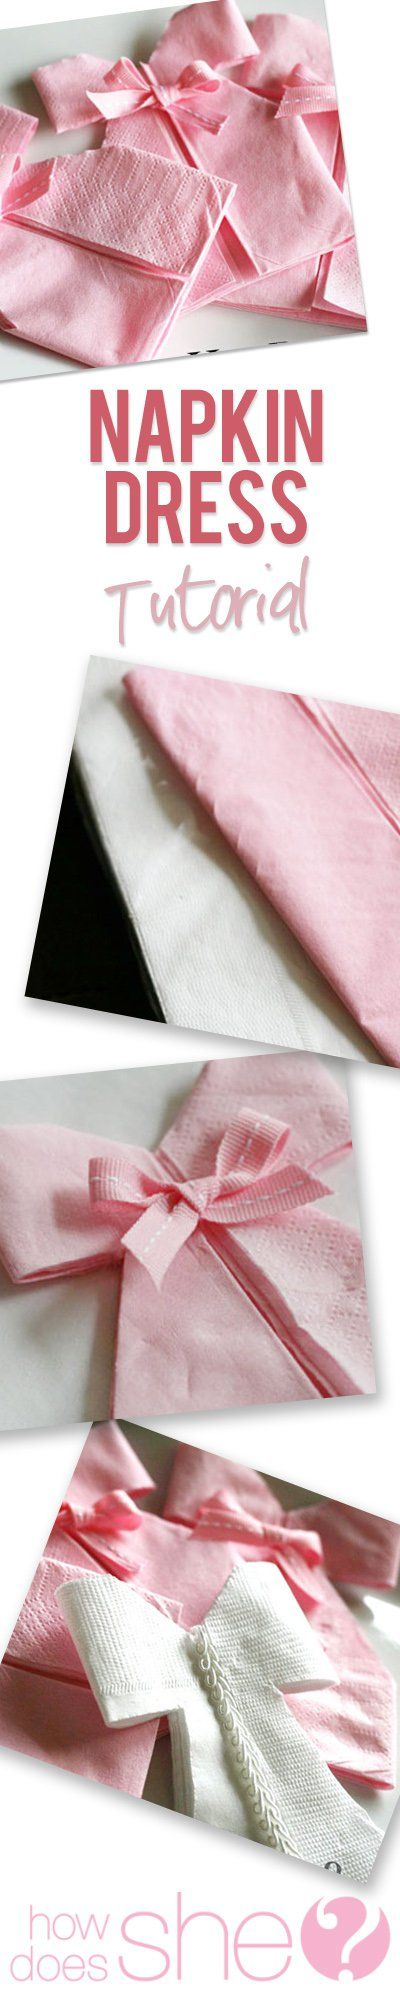 Easy folded napkins created into a dress. Perfect for a baby shower of bridal shower. Easy to make napkin dress!